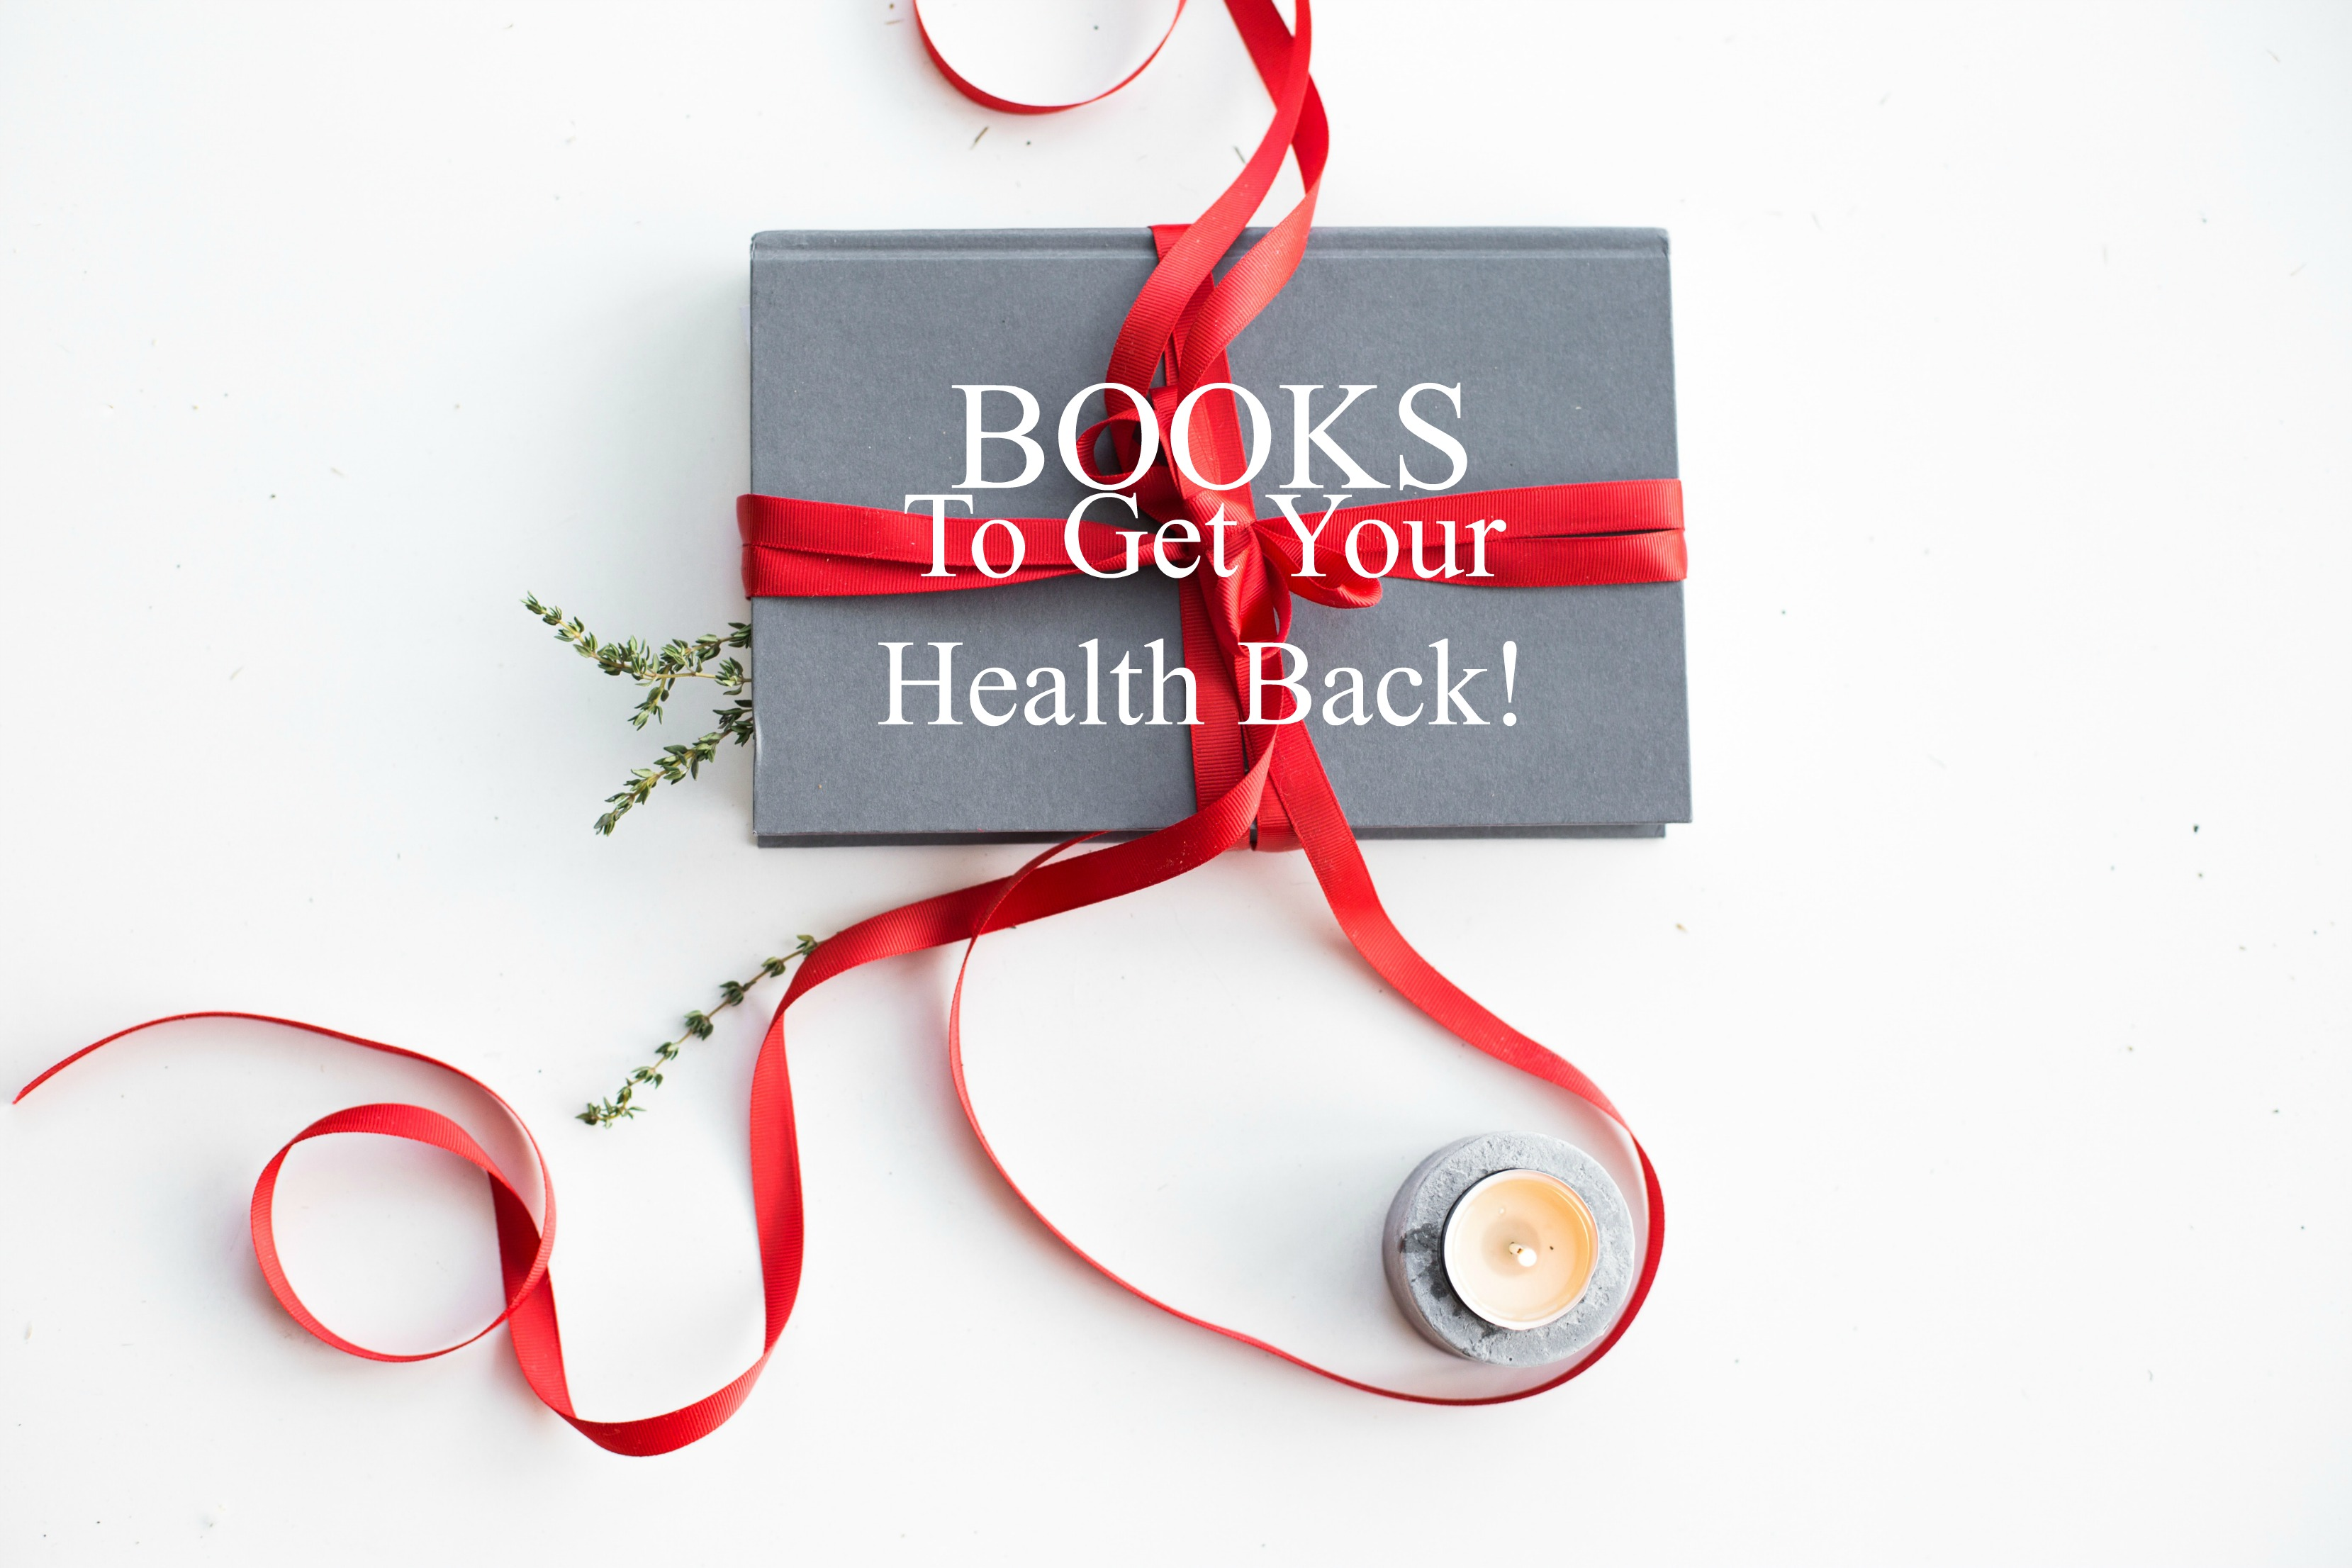 Books to Get Healthy